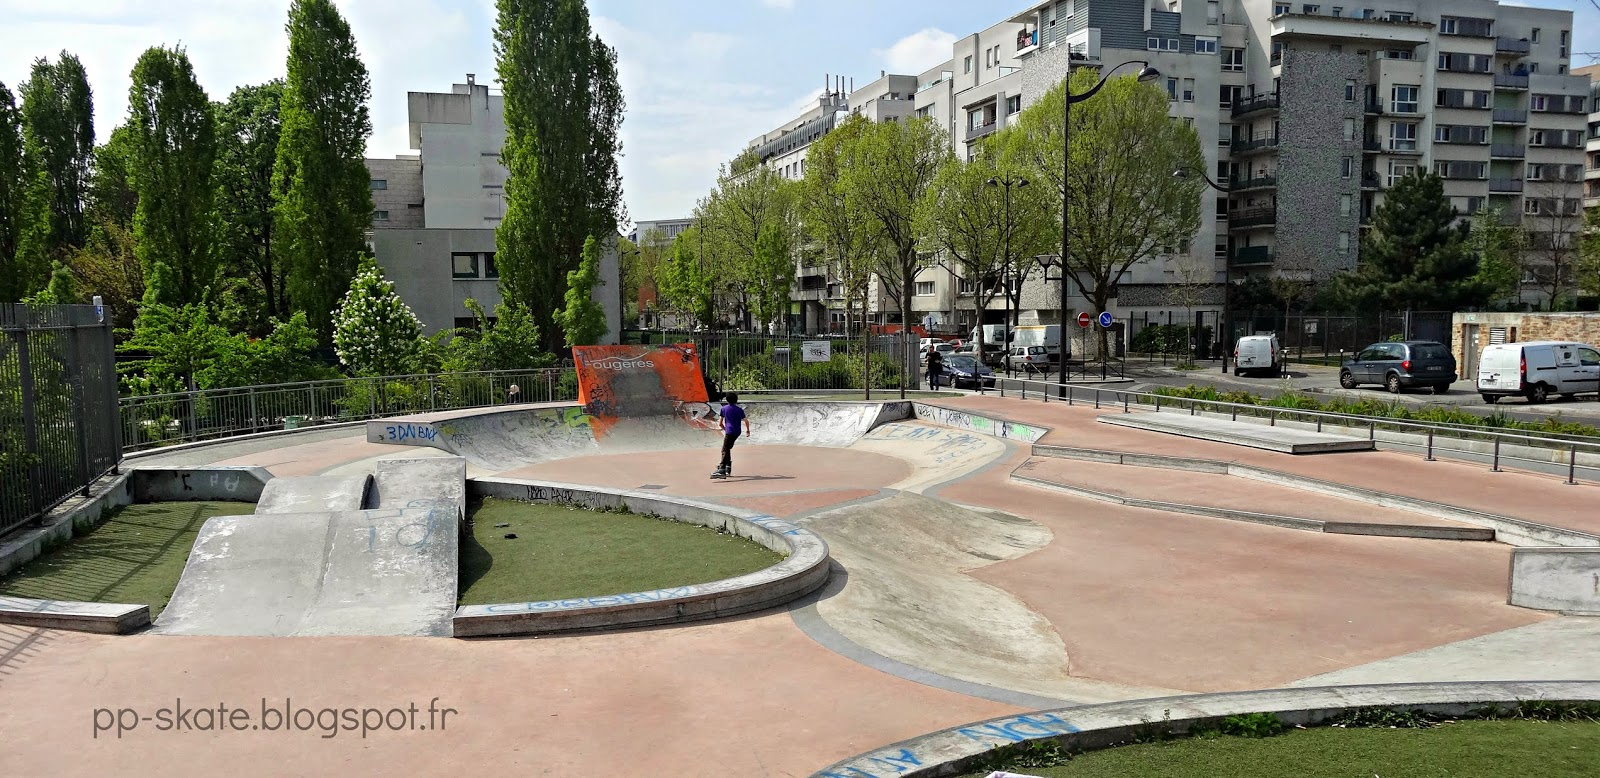 skatepark paris fougeres